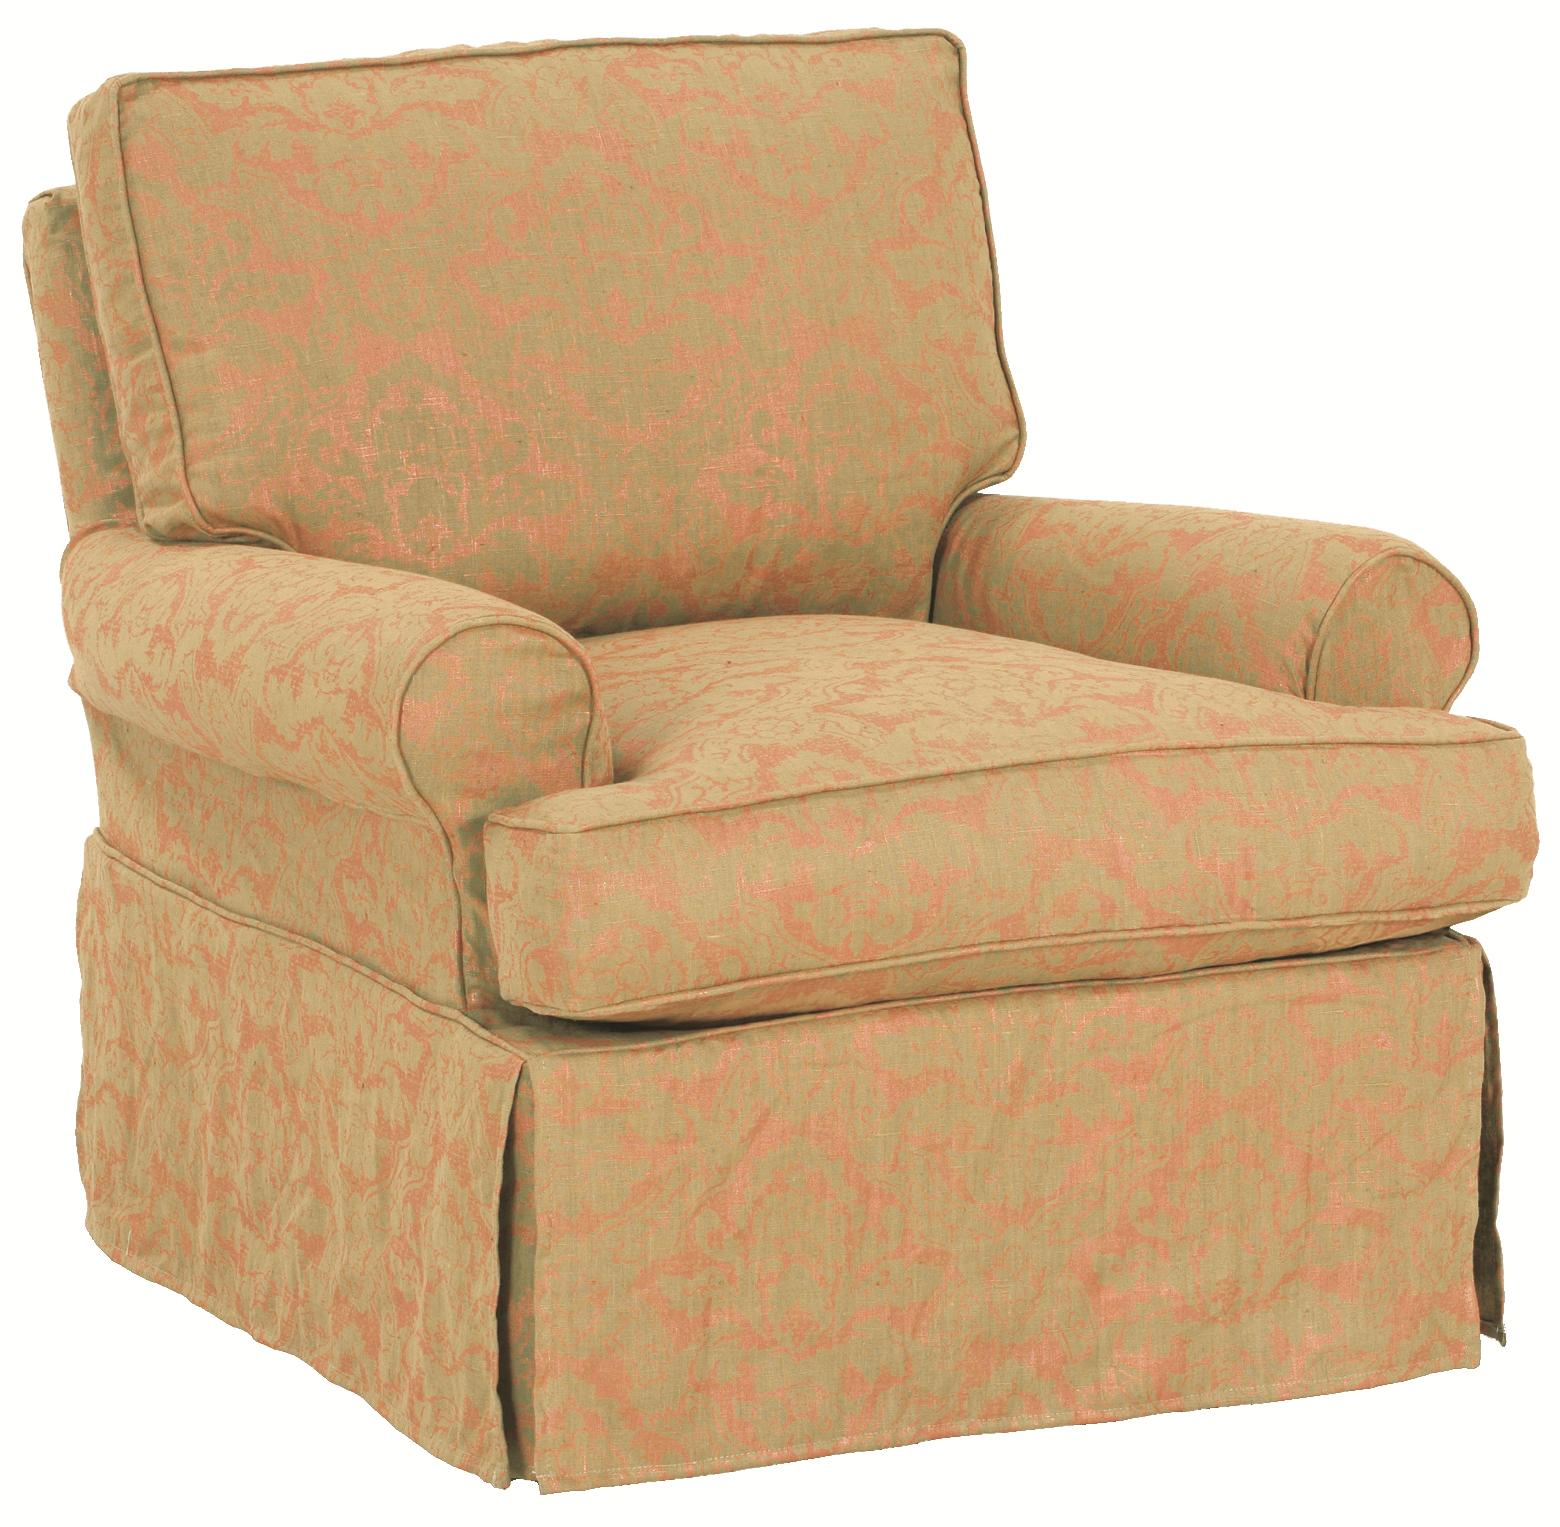 Accent Chairs Luci Slipcover Swivel Glider With Traditional Skirt By Robin  Bruce